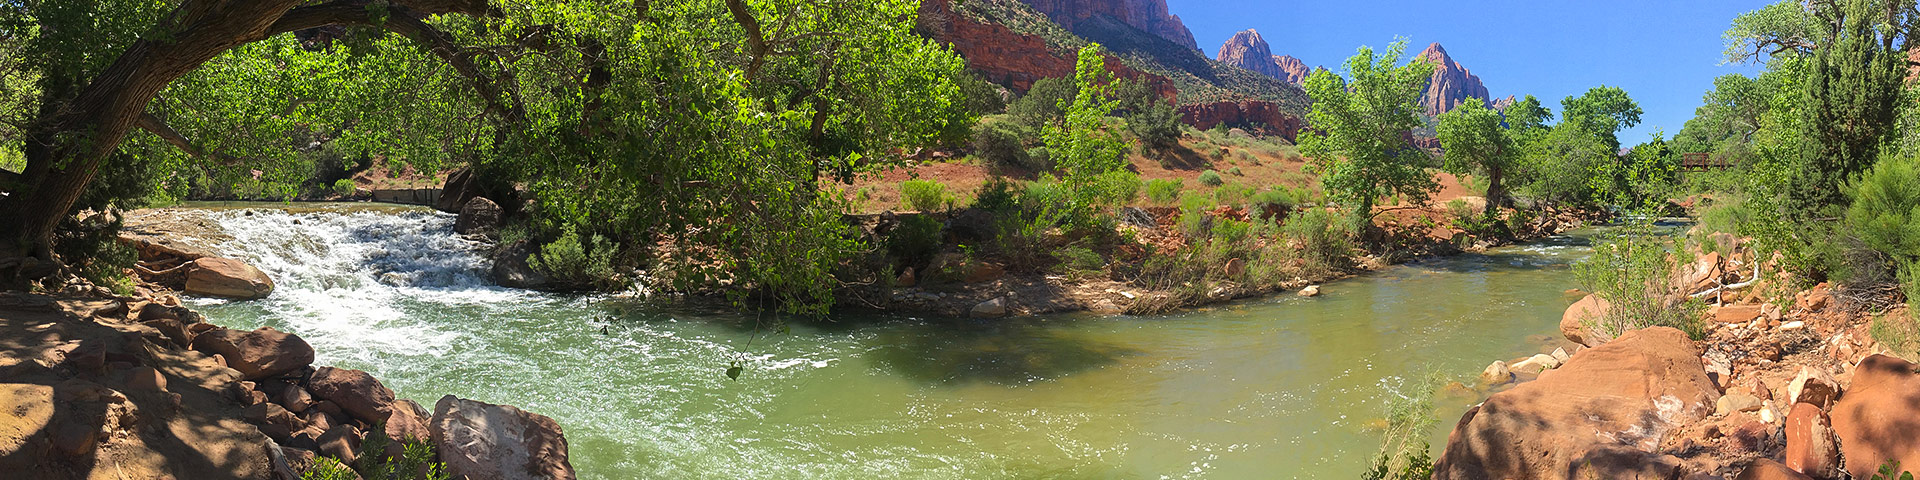 Pa'Rus Trail hike in Zion National Park